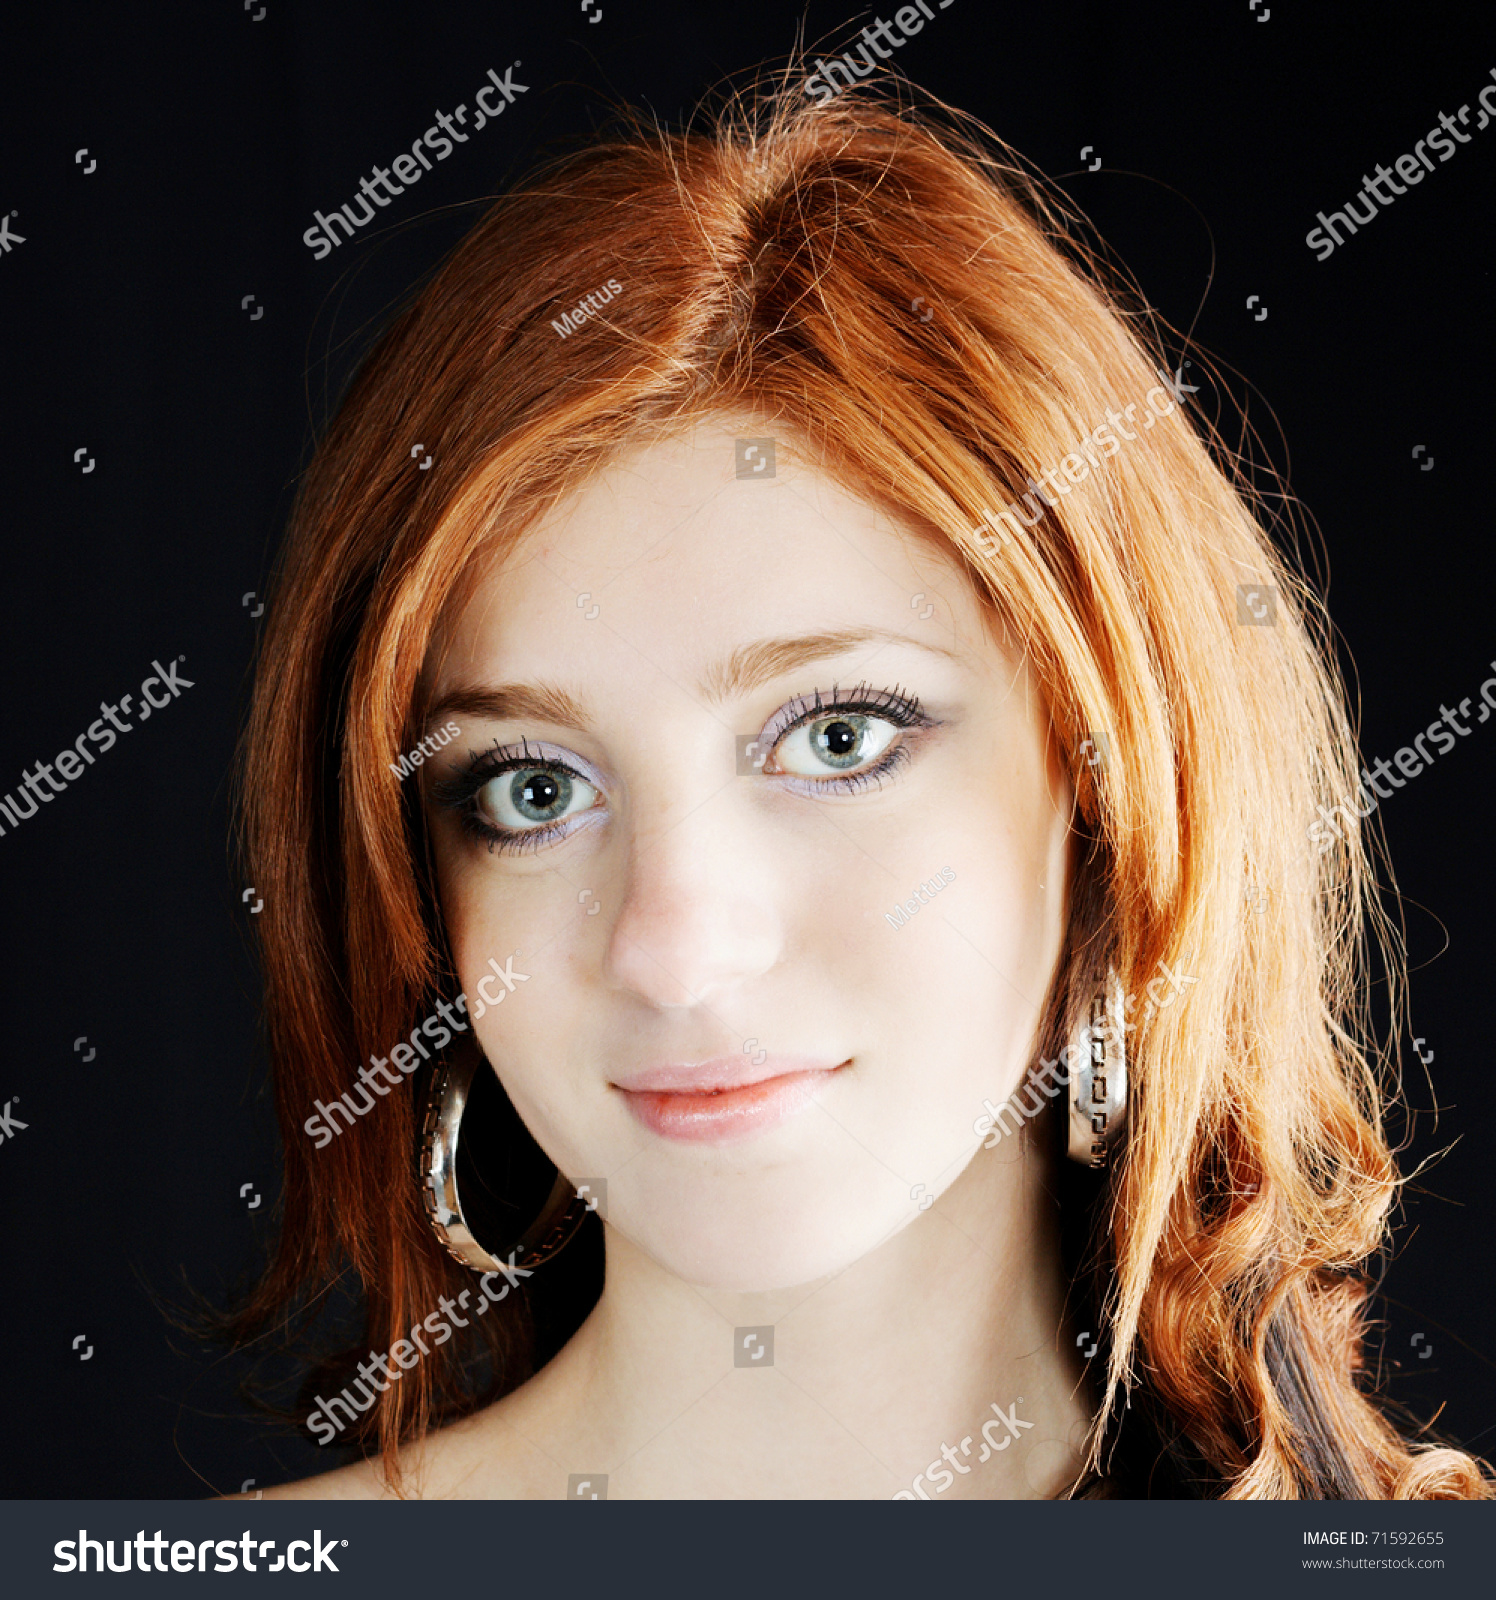 face of the girl